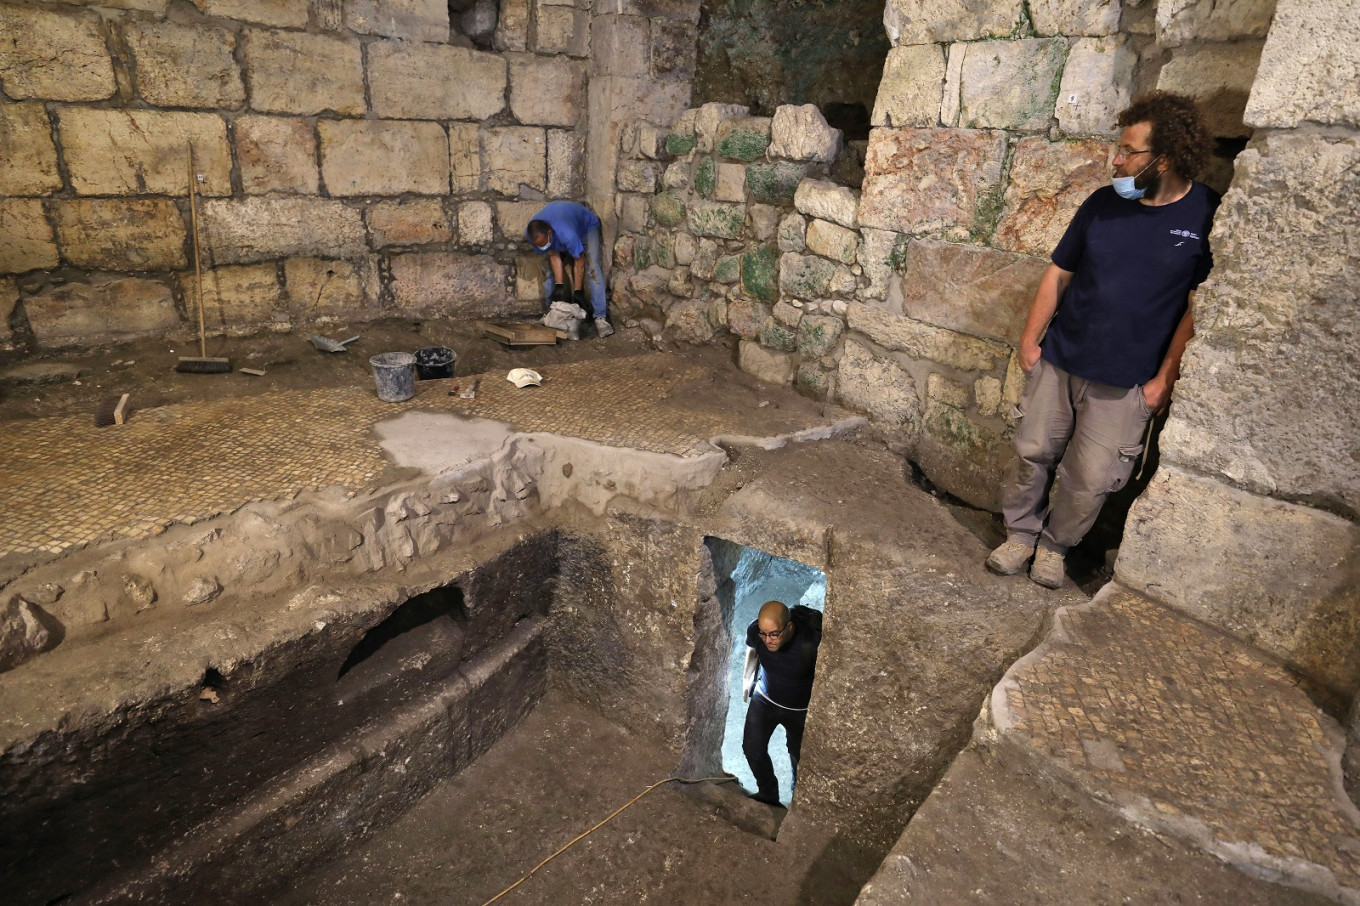 Researchers find ancient rooms under Jerusalem's Western Wall